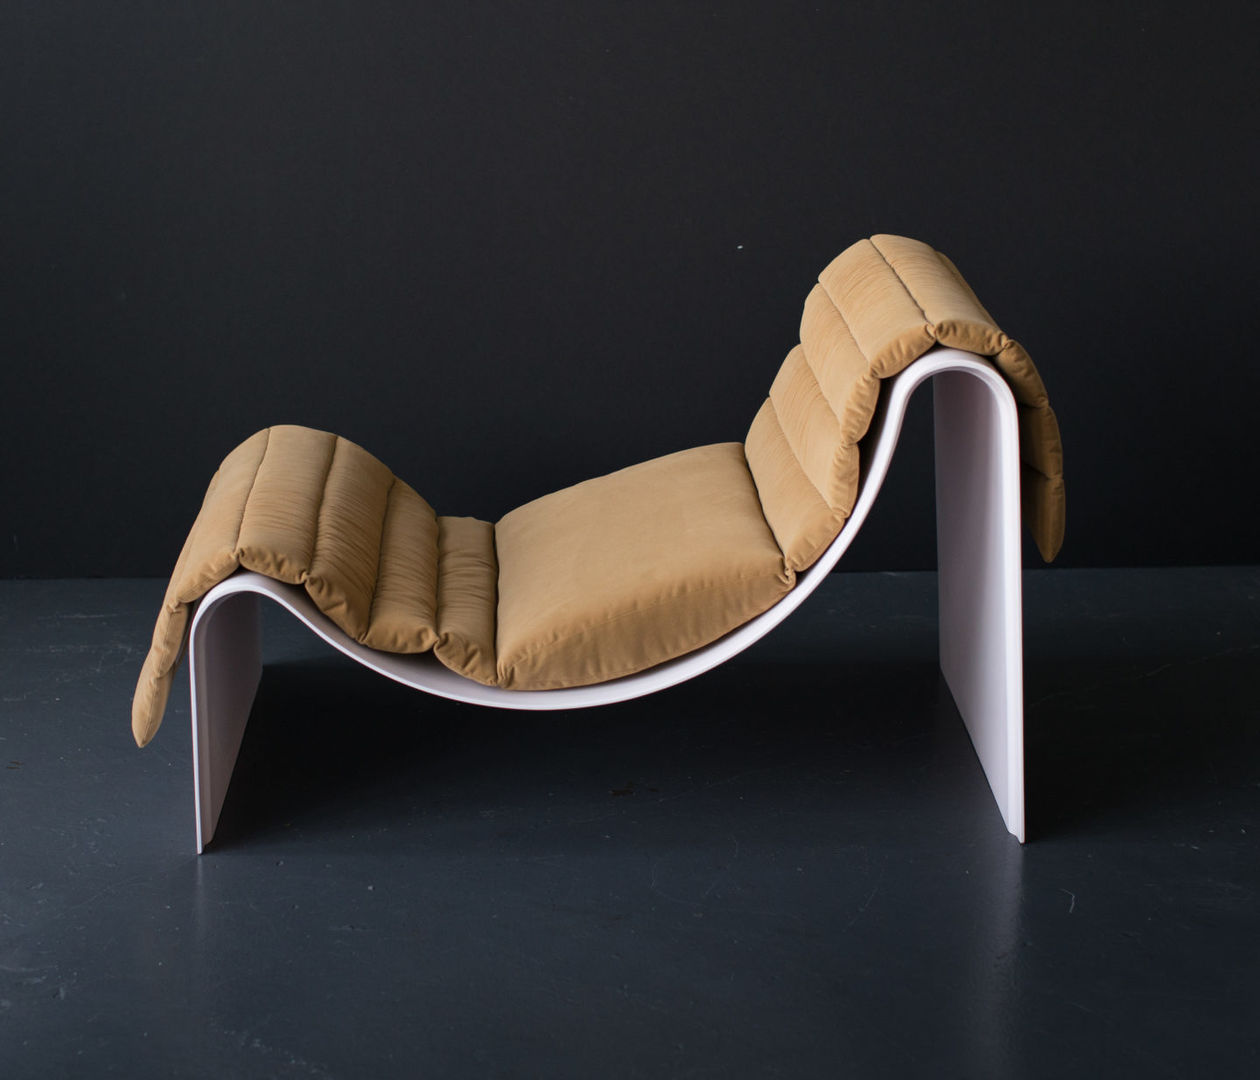 Lounge Chair: How To Use It?